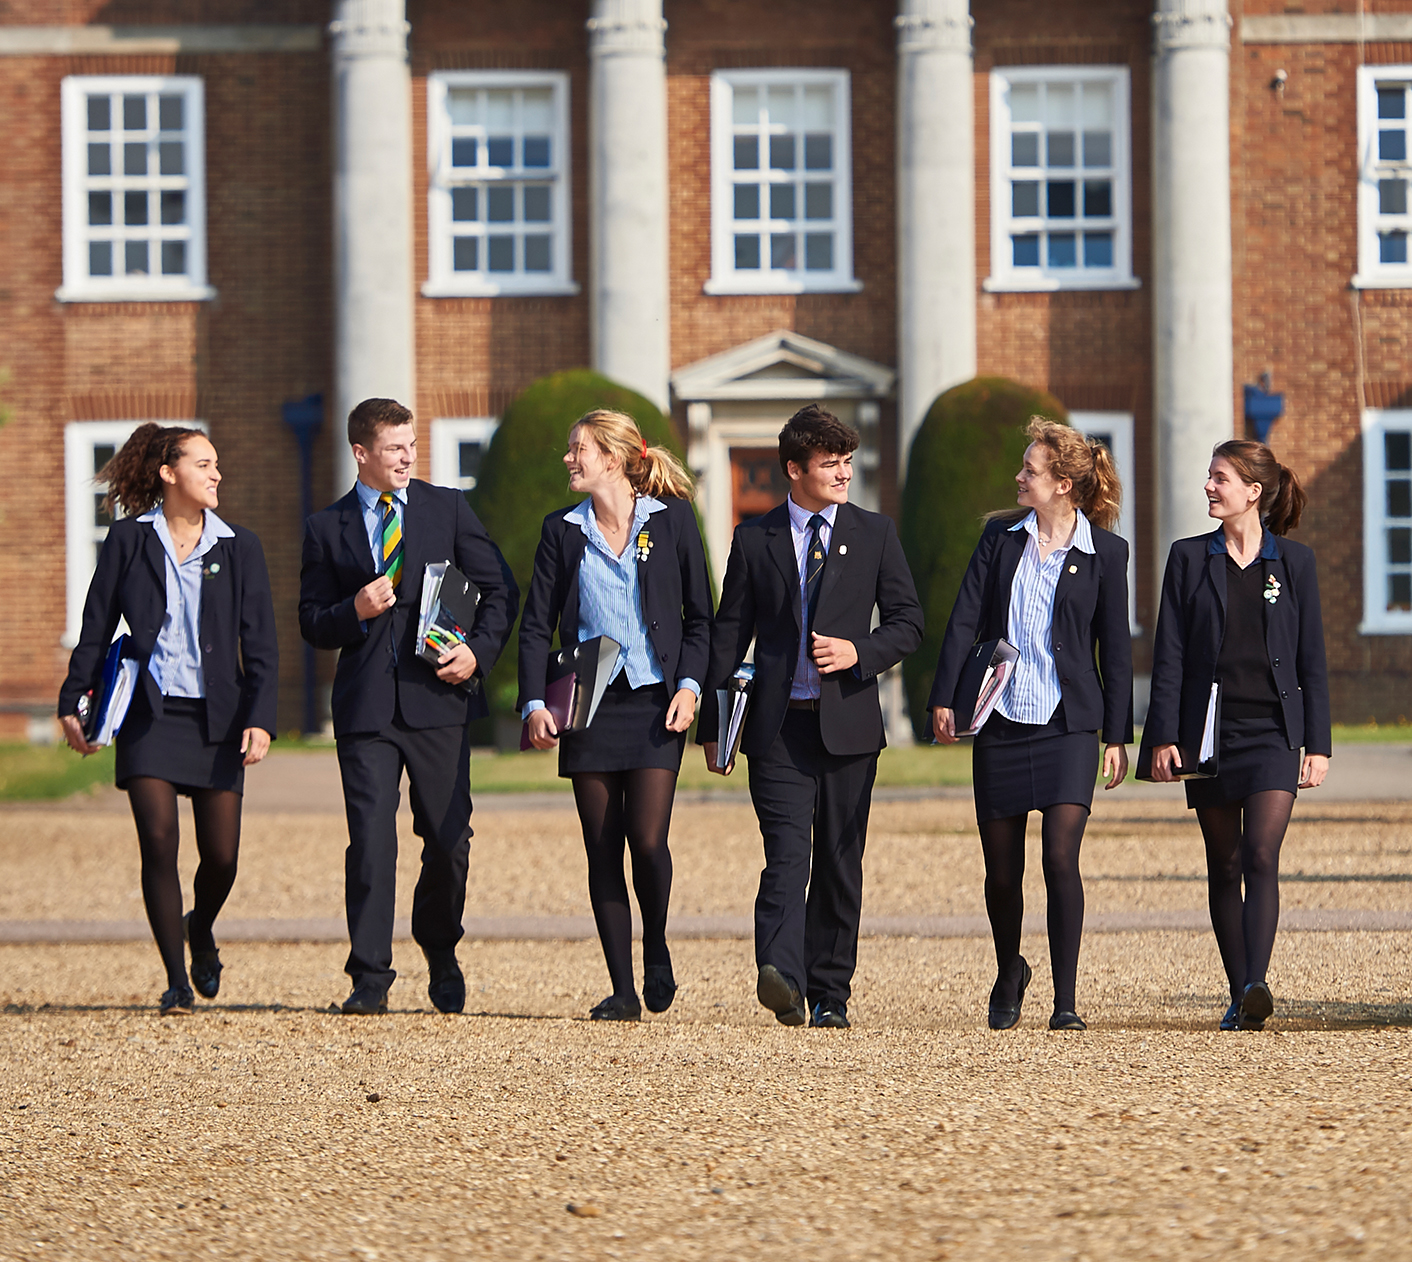 Sixth Form pupils walking together in front of the Royal Hospital School building